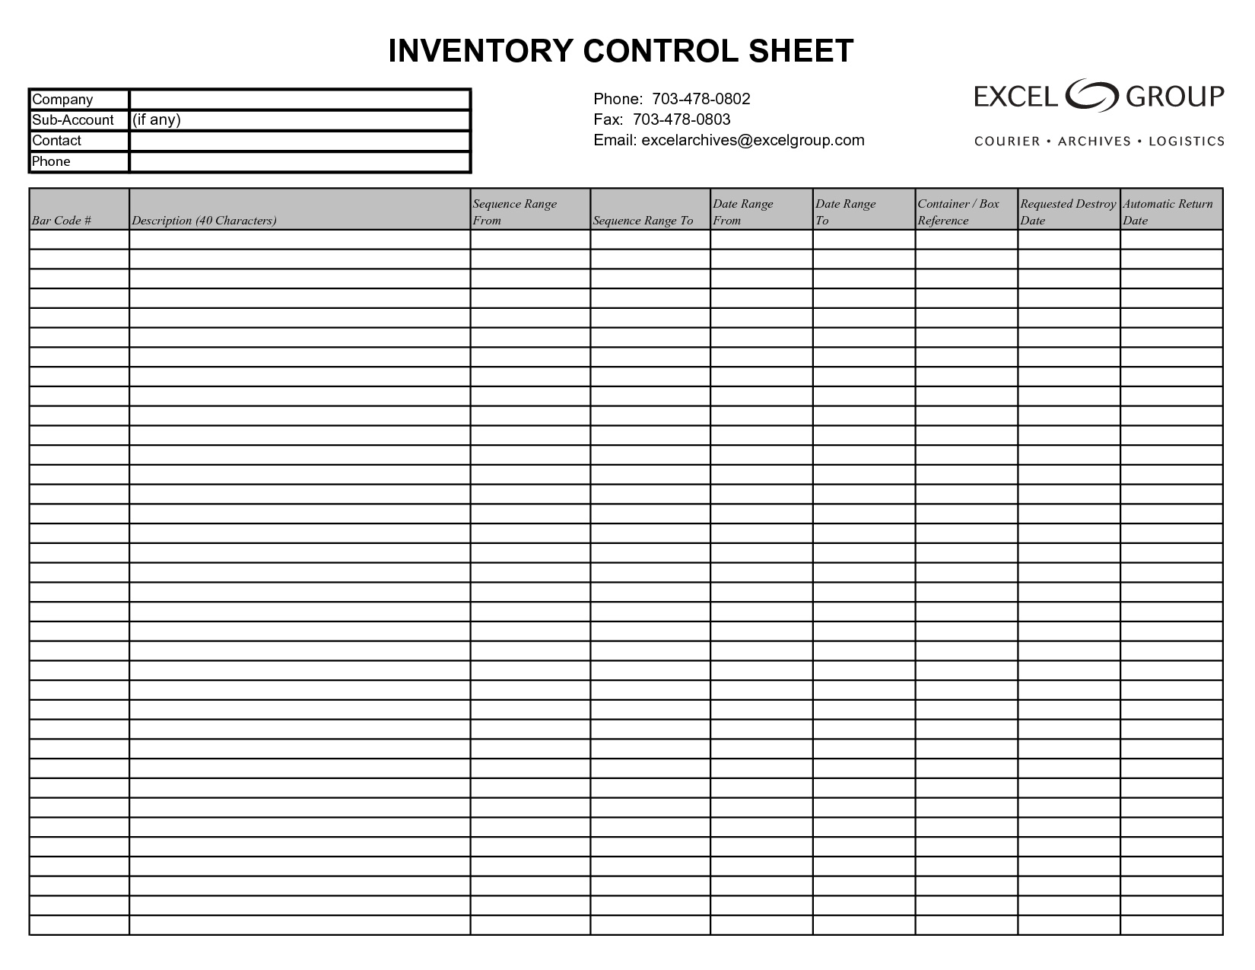 Inventory Spreadsheet Template Excel Product Tracking | My In Spreadsheet Inventory